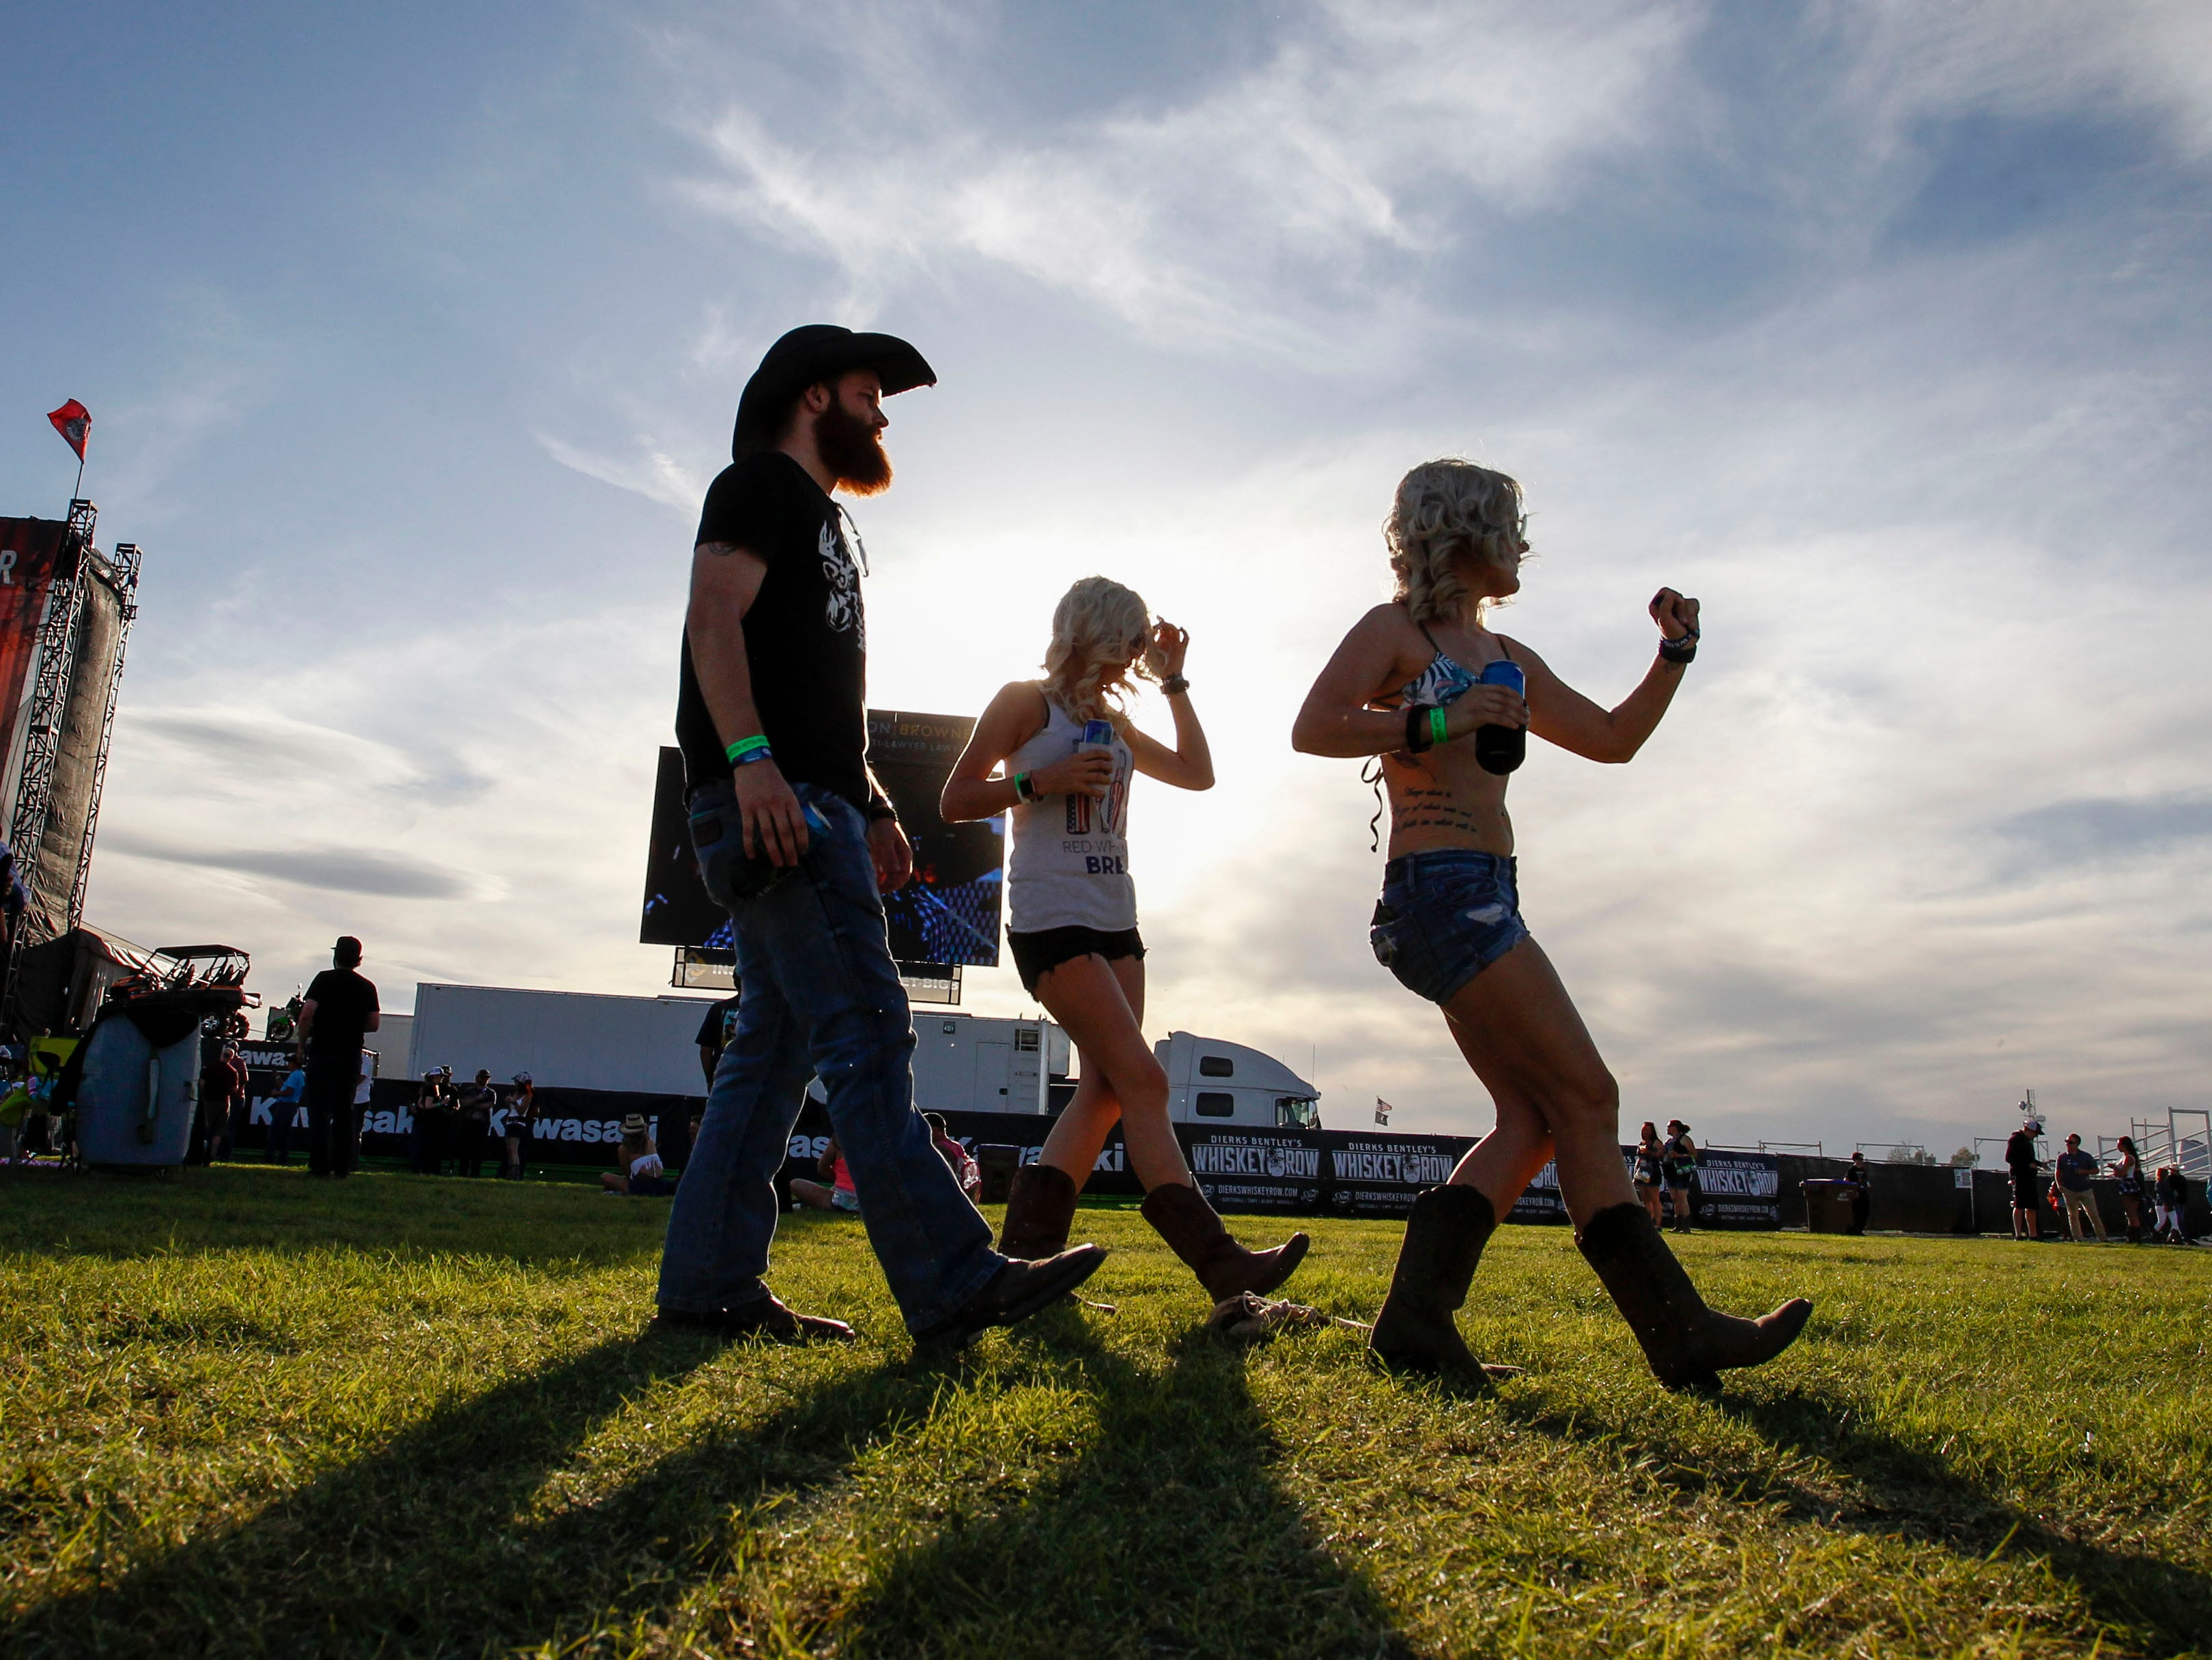 Brad Eckburg, Tiffani Brooks and Brittany Bowman dance as the sun prepares to set during Country Thunder Arizona on April 11, 2019, in Florence, Arizona.